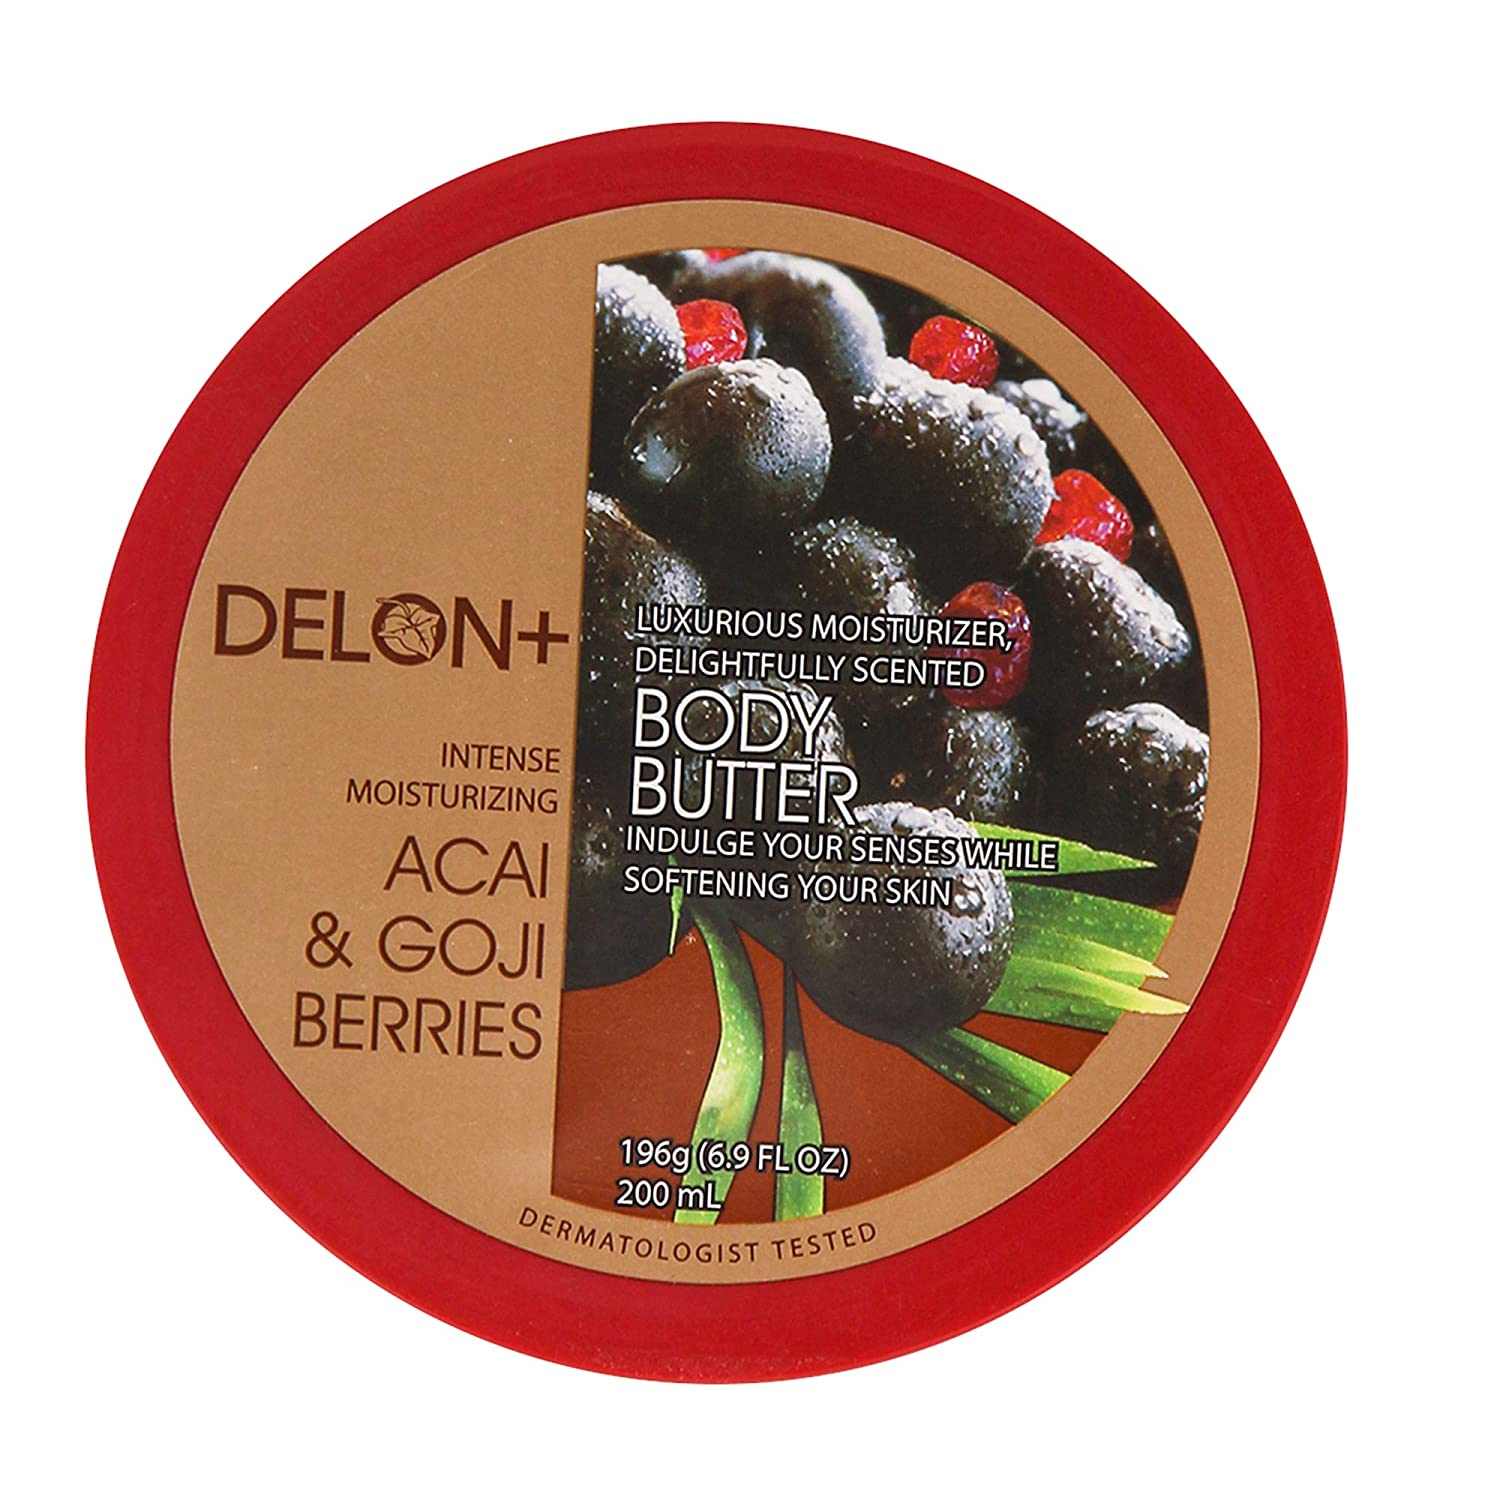 DELON Intense Moisturizing Body Butter